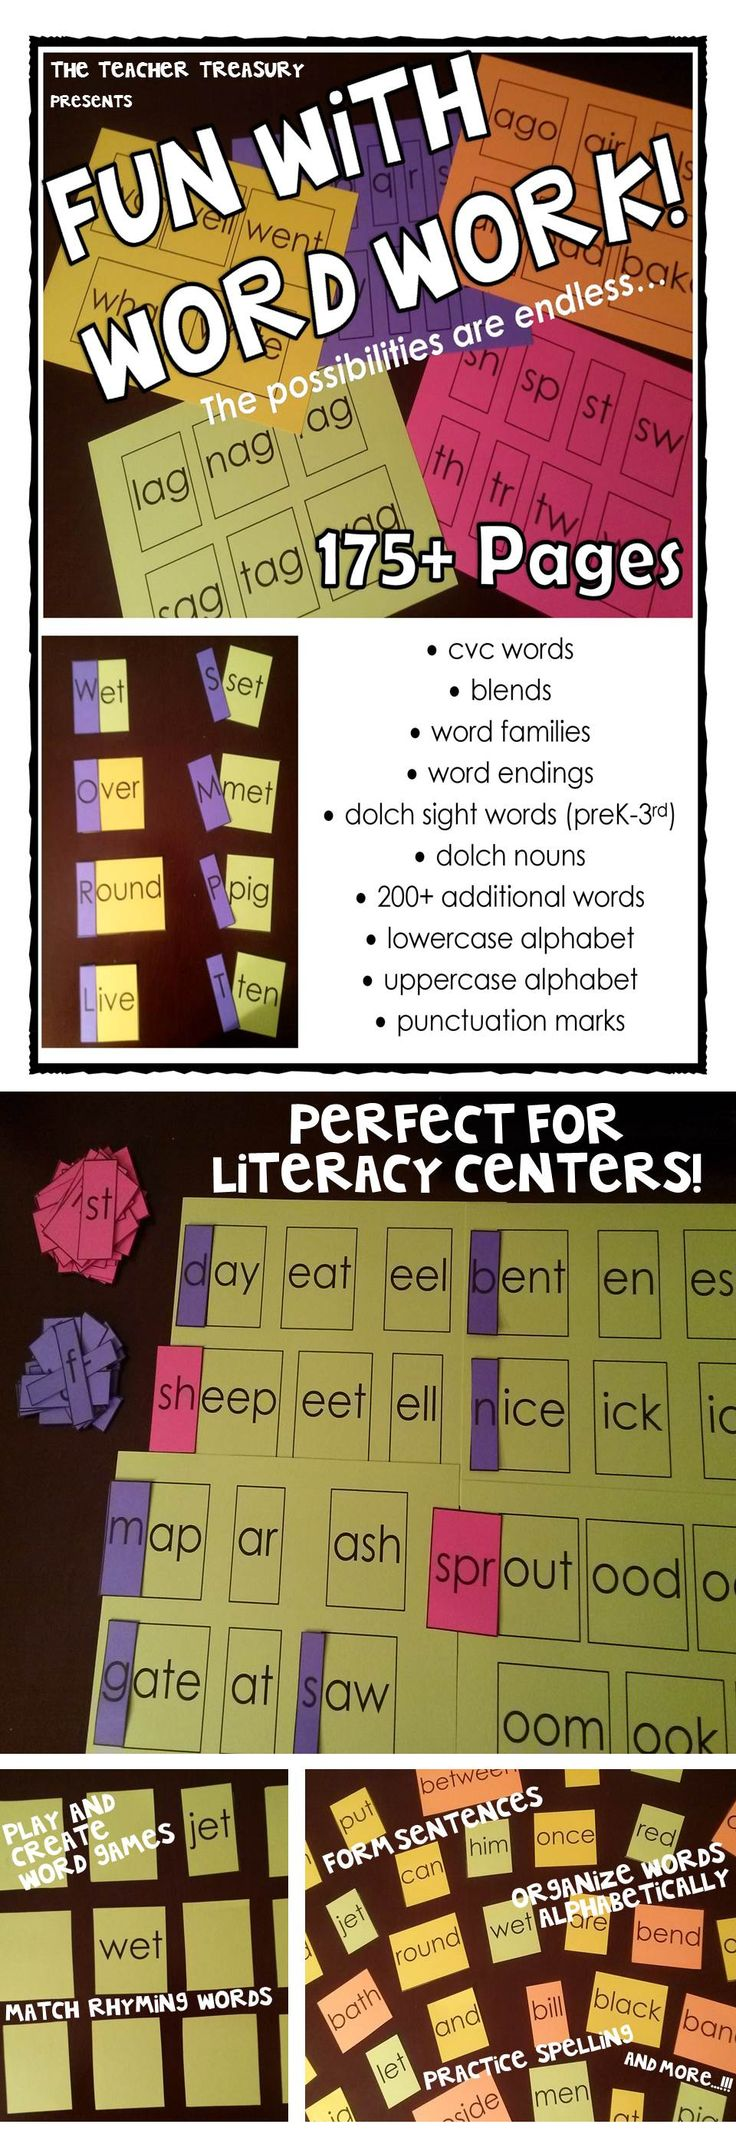 Fun With Word Work! - Phonics and Sight Word Flashcards - Use these 300+ words, blends, word endings, word families and alphabets to form new words, practice spelling, create sentences and much more!